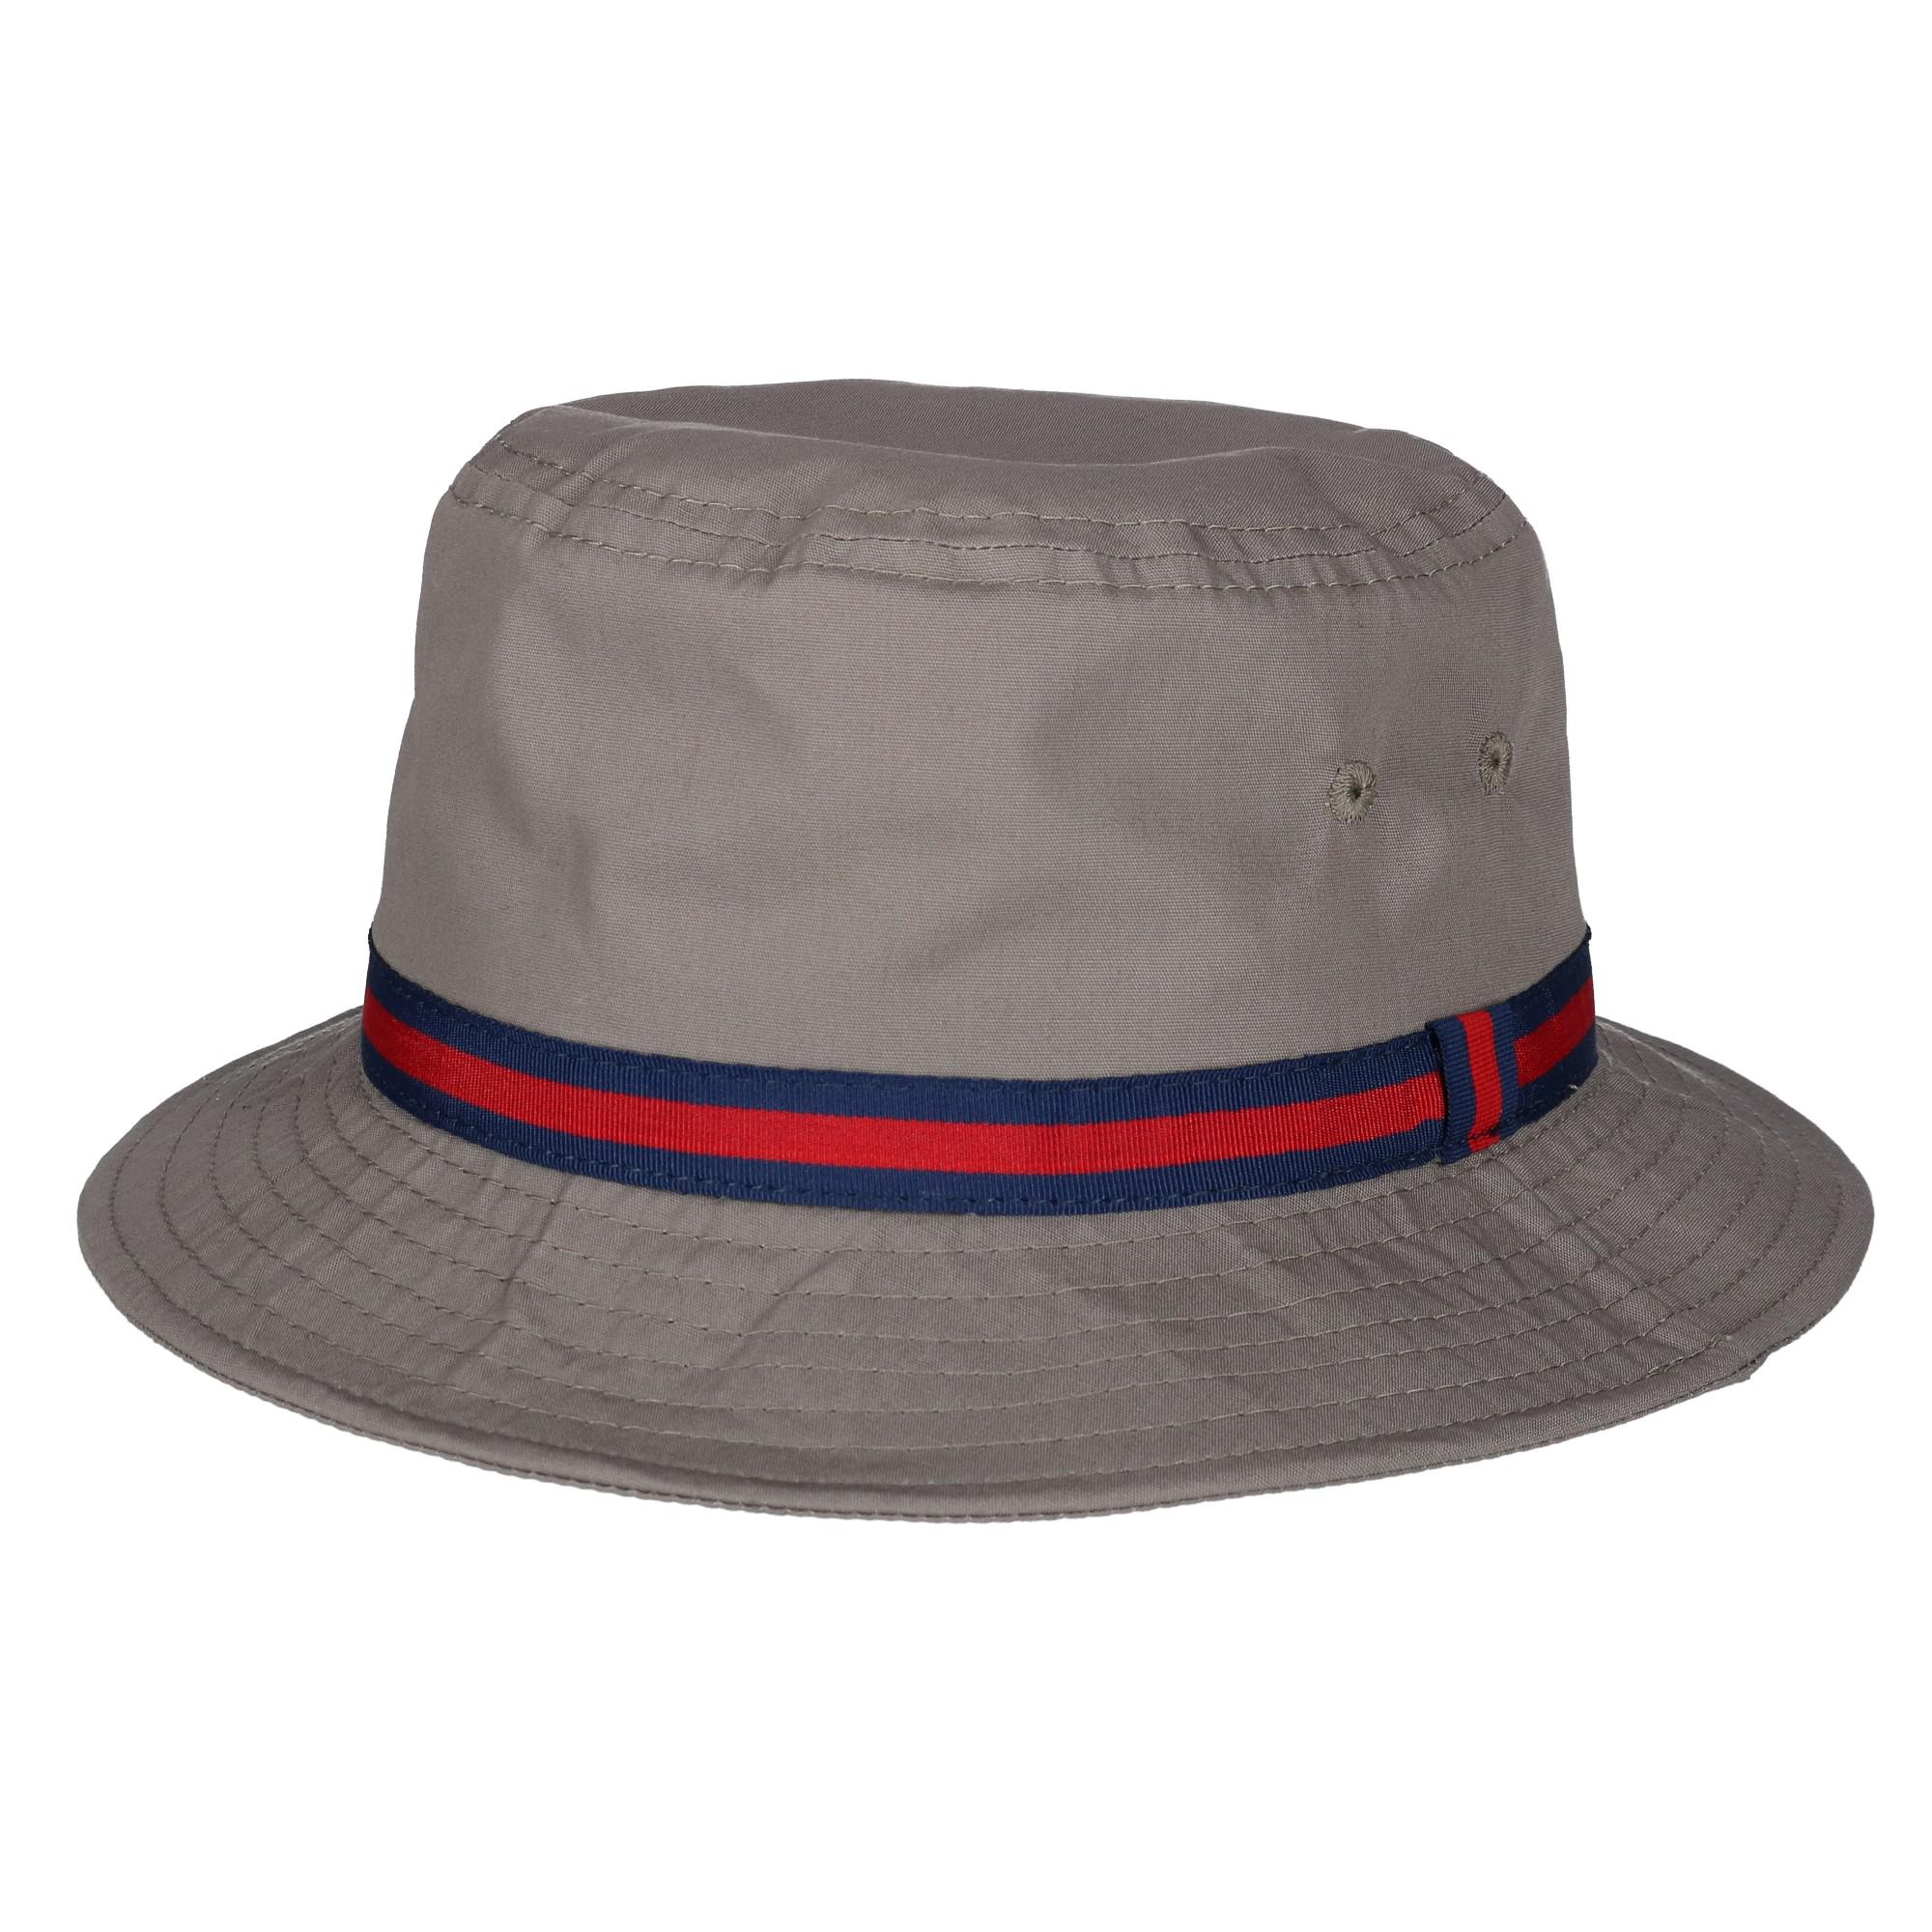 New-Dorfman-Pacific-Cotton-Water-Repellent-Traditional-Rain-Bucket-Hat